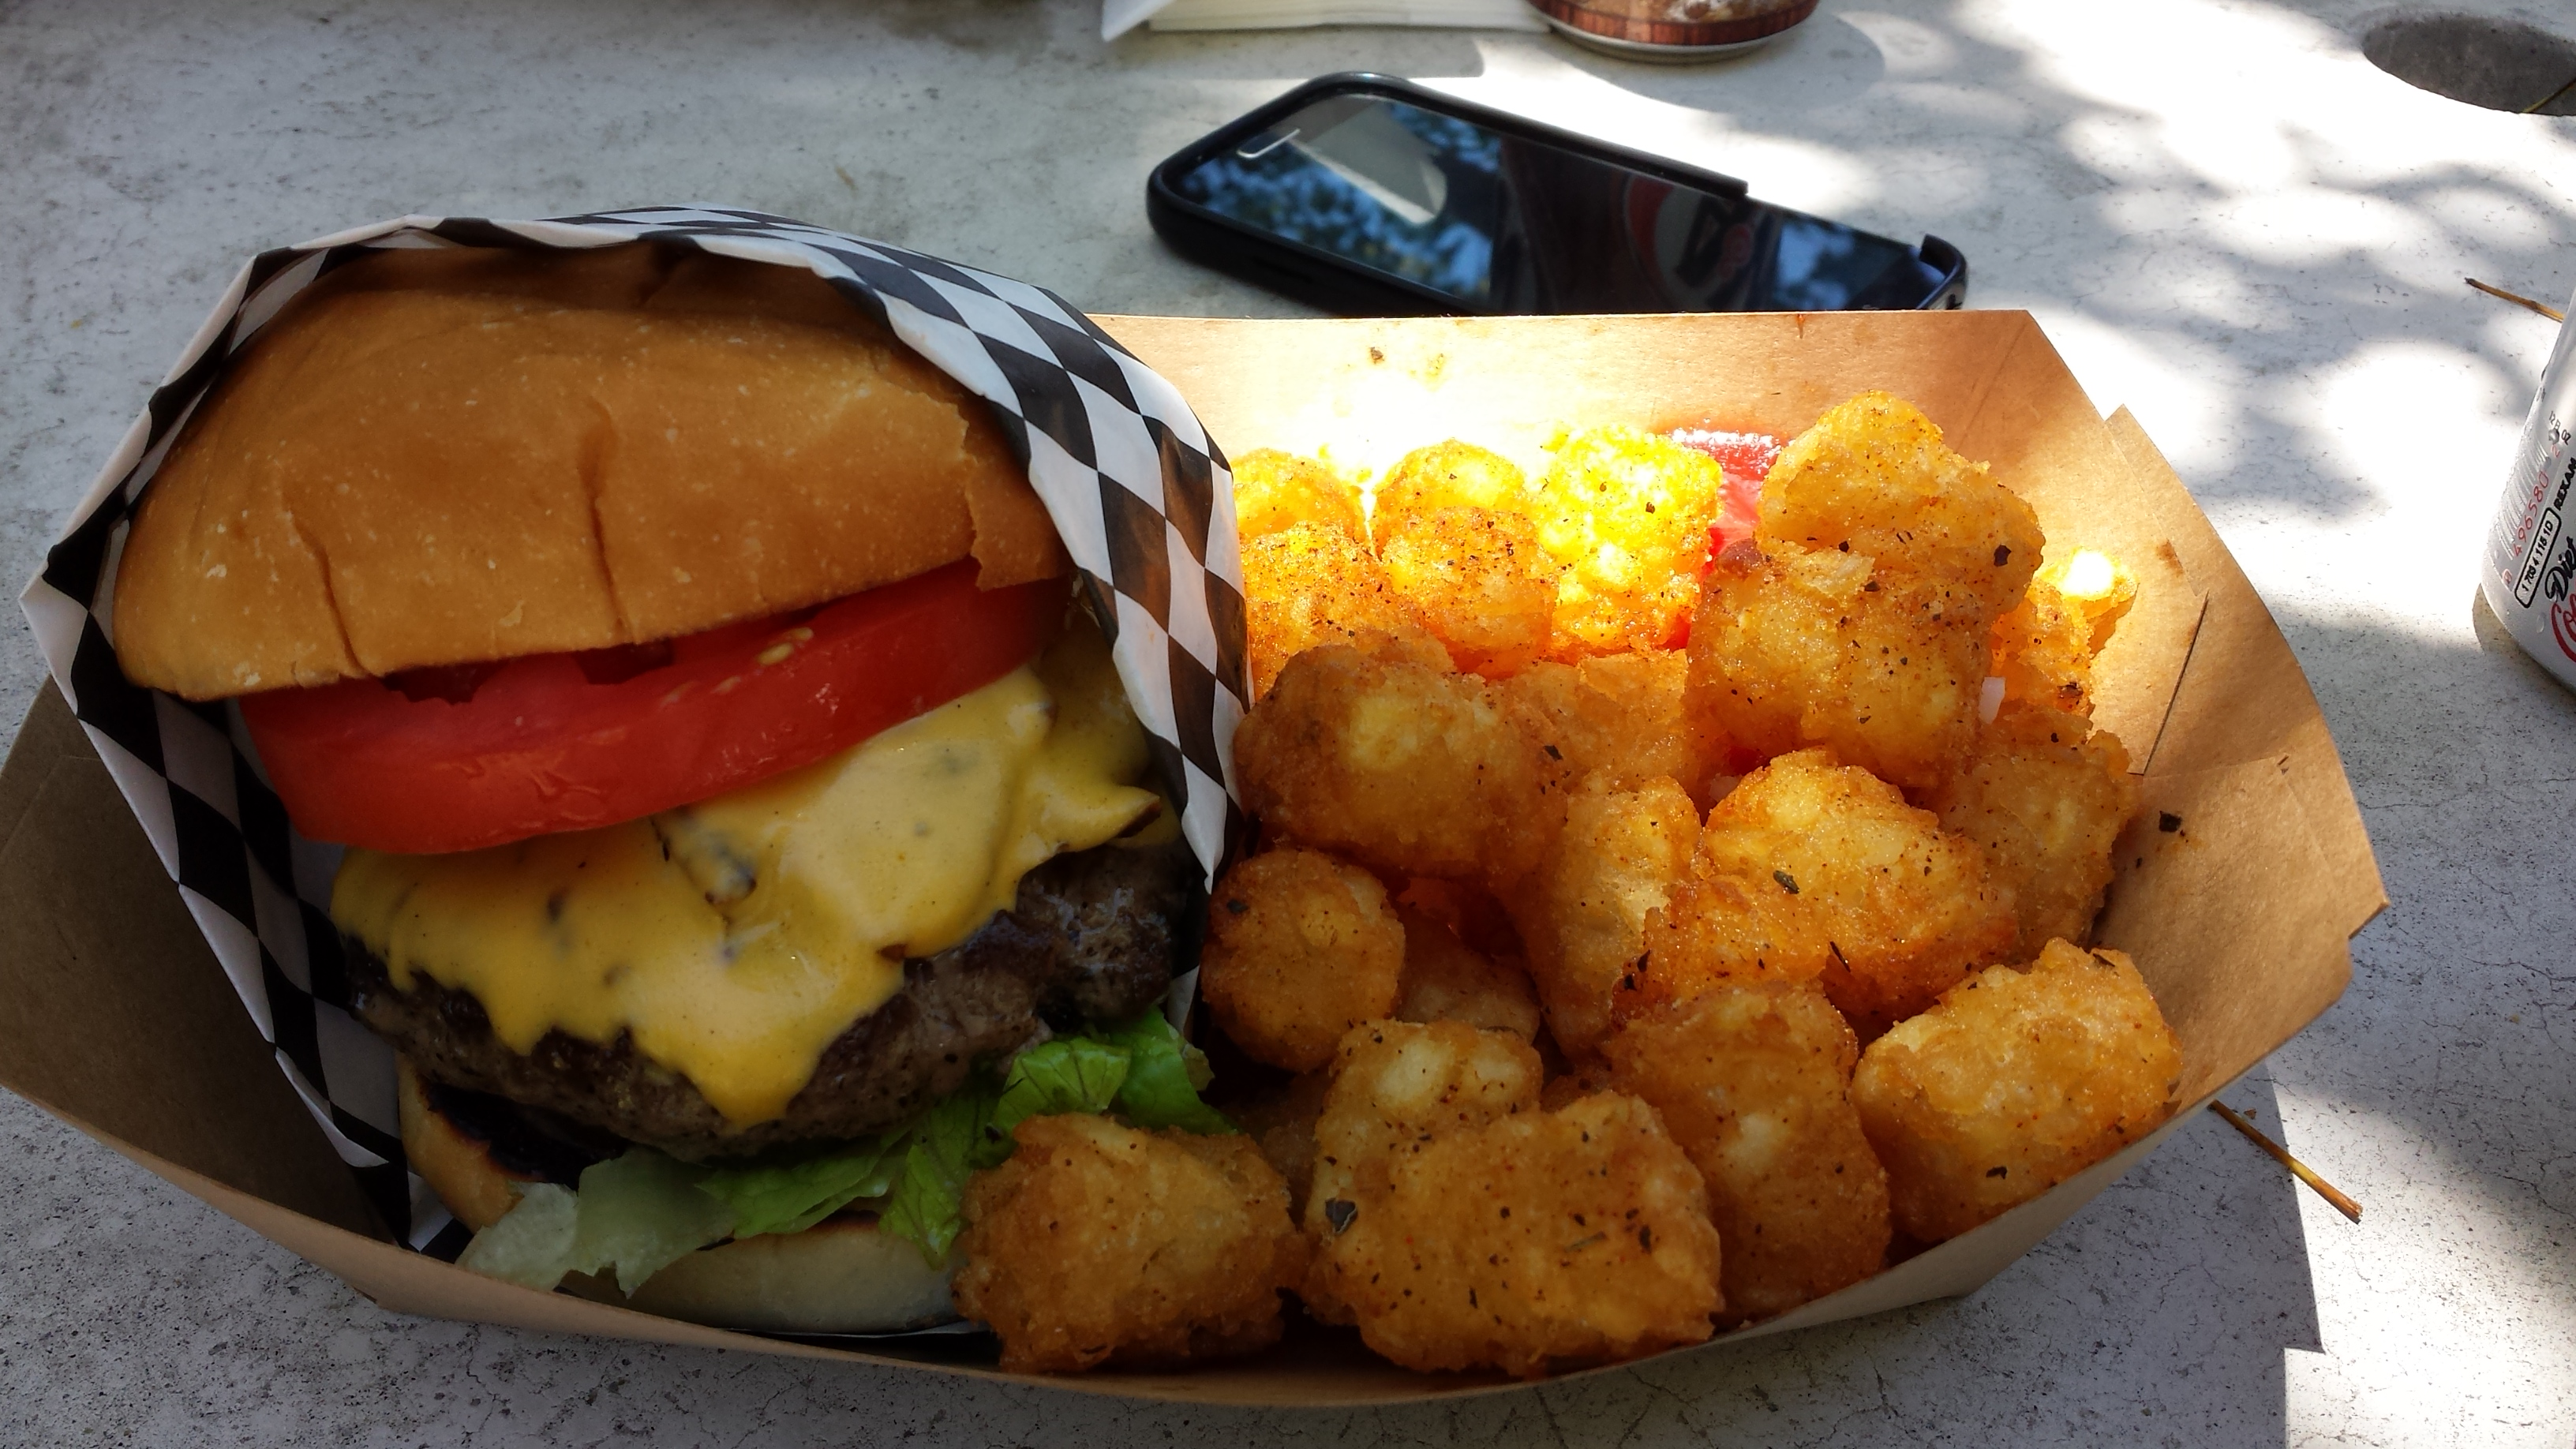 San Diego Burger Club Went To Stuffed Burgers Food Truck On June 11 The Location Of Changes Daily And You Have Go Their Website